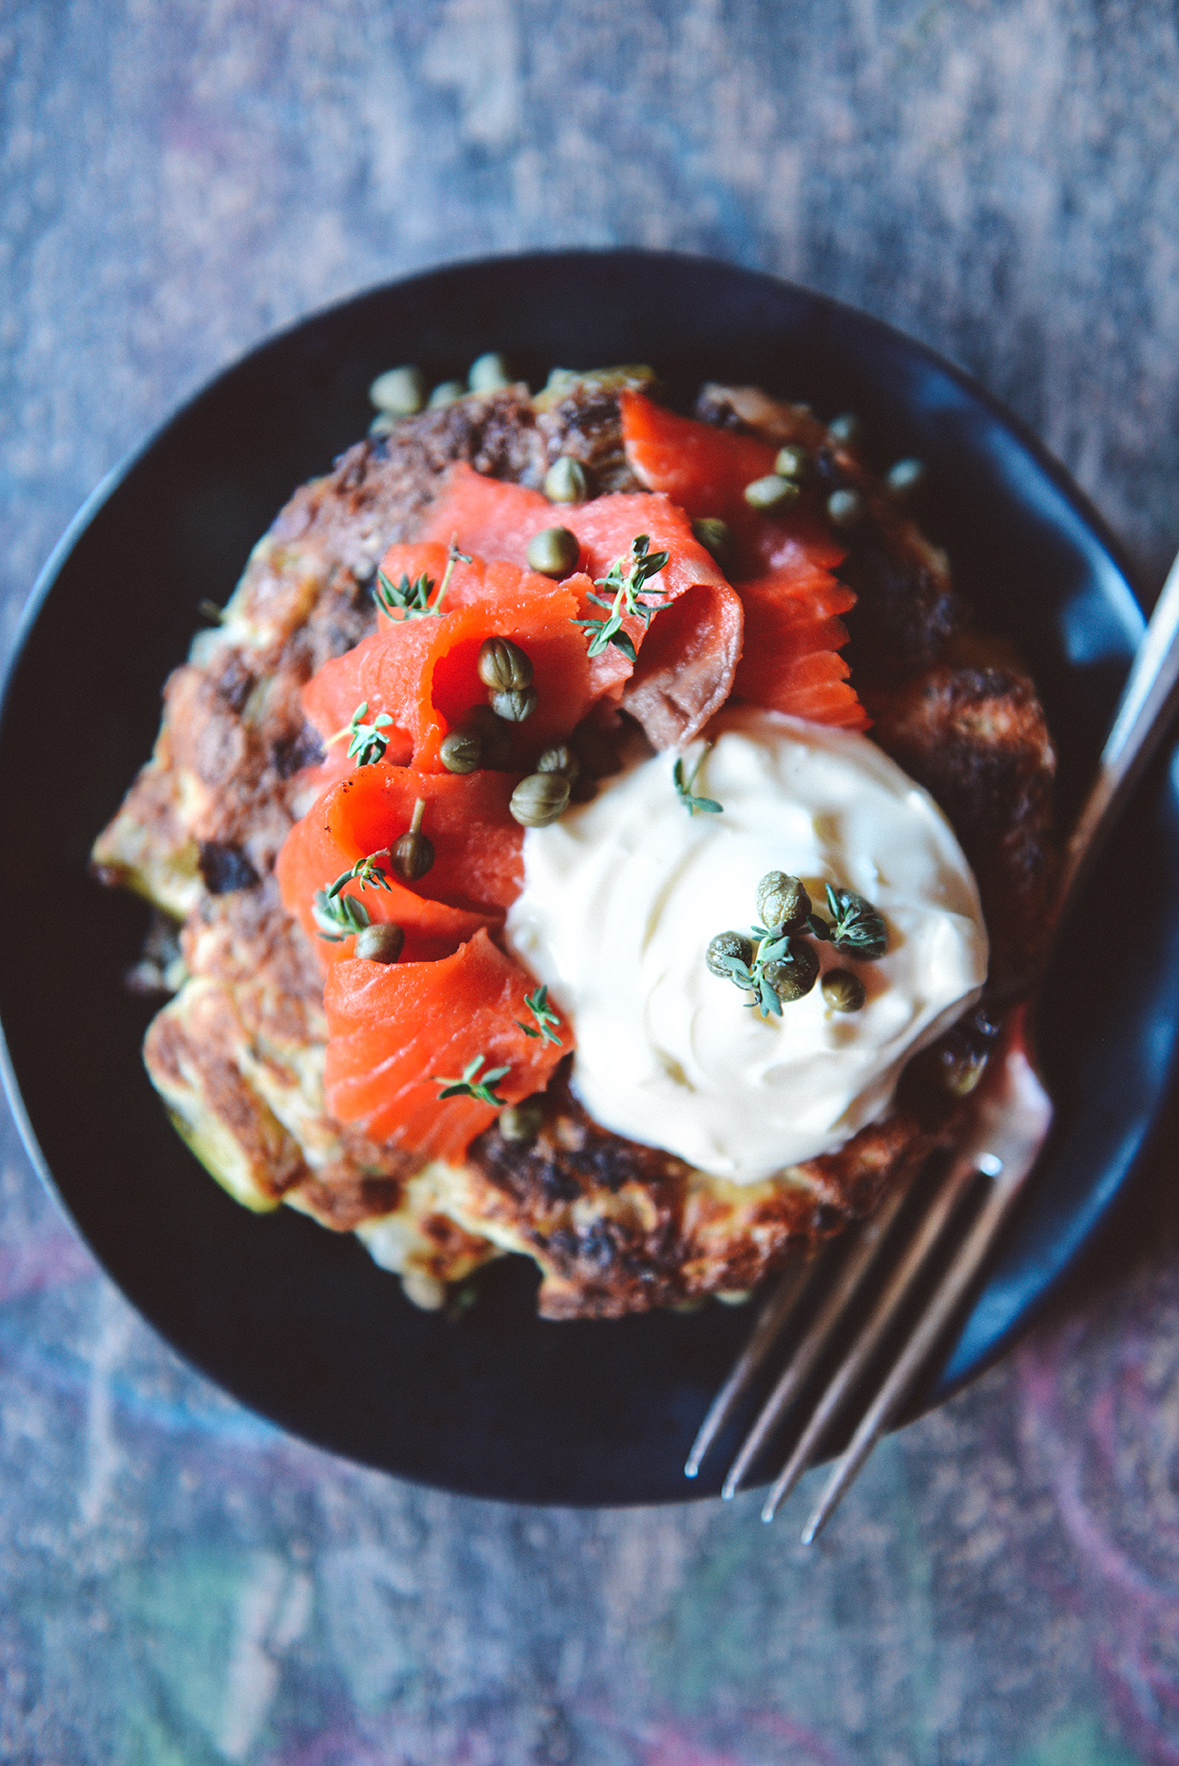 What To Make With Leftover Stuffing: Stuffing Latkes with Salmon, Crème Fraîche & Capers